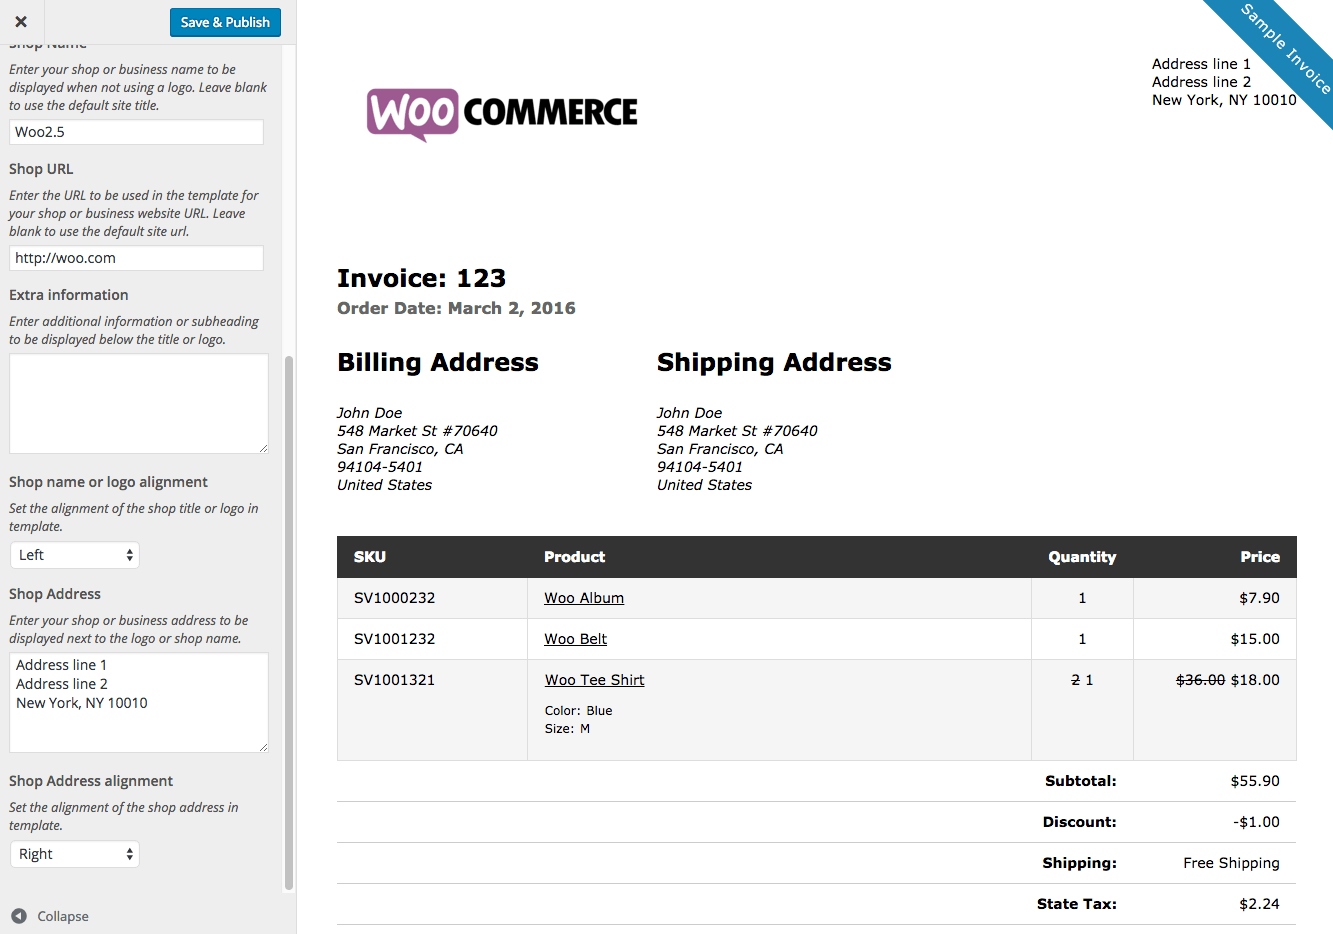 Ultrablogus  Prepossessing Woocommerce Print Invoices Amp Packing Lists  Woocommerce Docs With Great Woocommerce Print Invoices  Packing Lists Customizer With Endearing Nike Com Receipt Also Print Out A Receipt In Addition Enterprise Car Rental Print Receipt And What Is E Receipt As Well As Gross Receipt Tax Additionally Walmart Extended Warranty Lost Receipt From Docswoocommercecom With Ultrablogus  Great Woocommerce Print Invoices Amp Packing Lists  Woocommerce Docs With Endearing Woocommerce Print Invoices  Packing Lists Customizer And Prepossessing Nike Com Receipt Also Print Out A Receipt In Addition Enterprise Car Rental Print Receipt From Docswoocommercecom